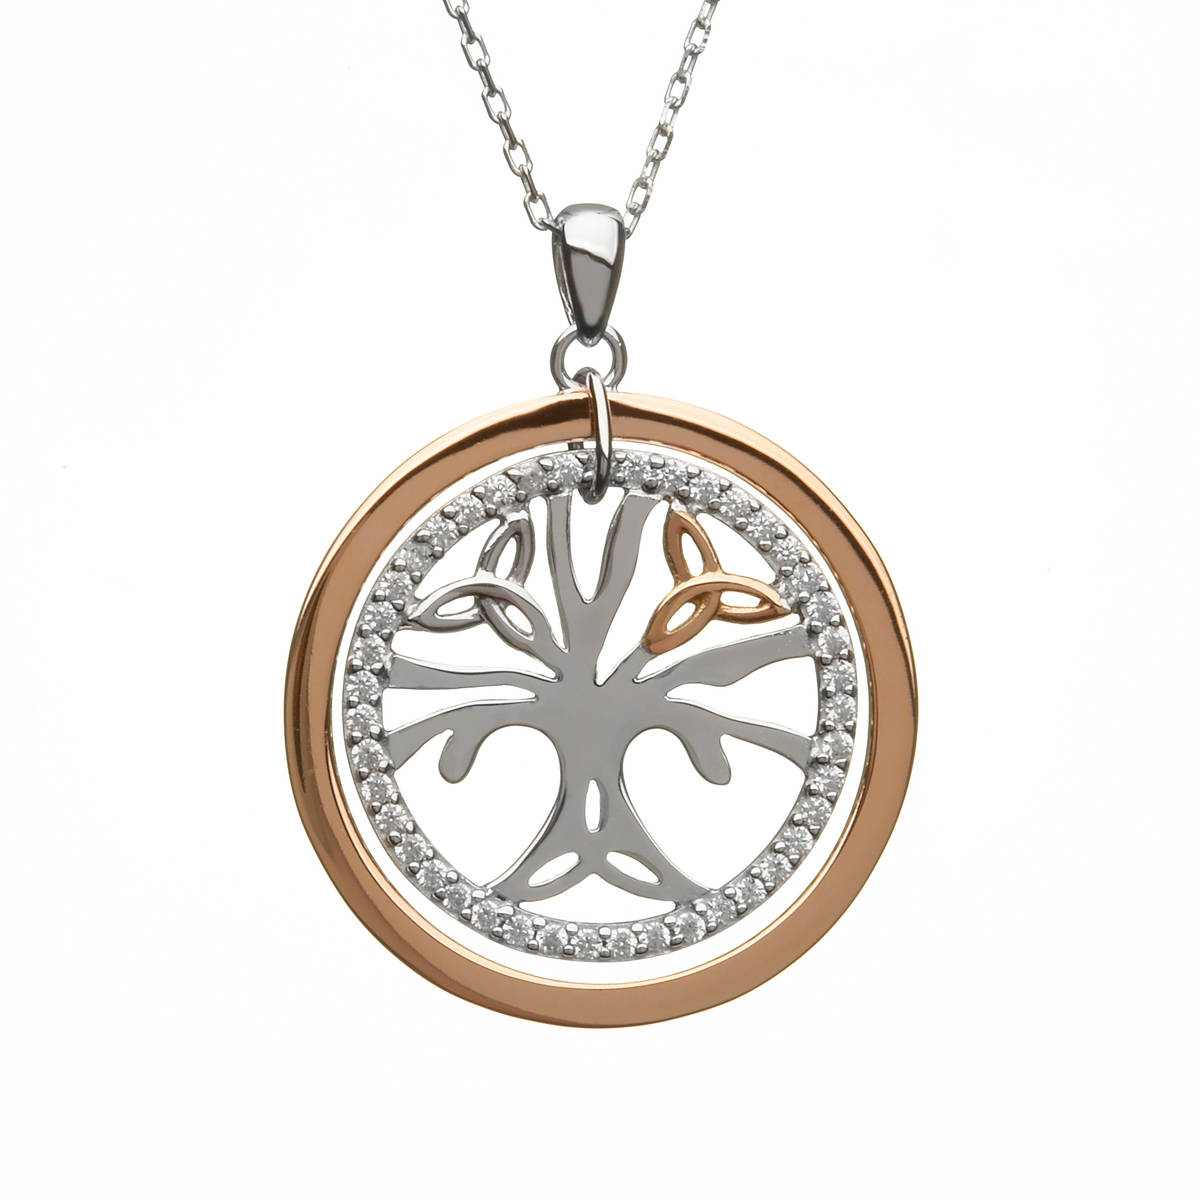 House of Lor silver/rose Tree of Life cz pendant made from rare Irish goldapck/drcck